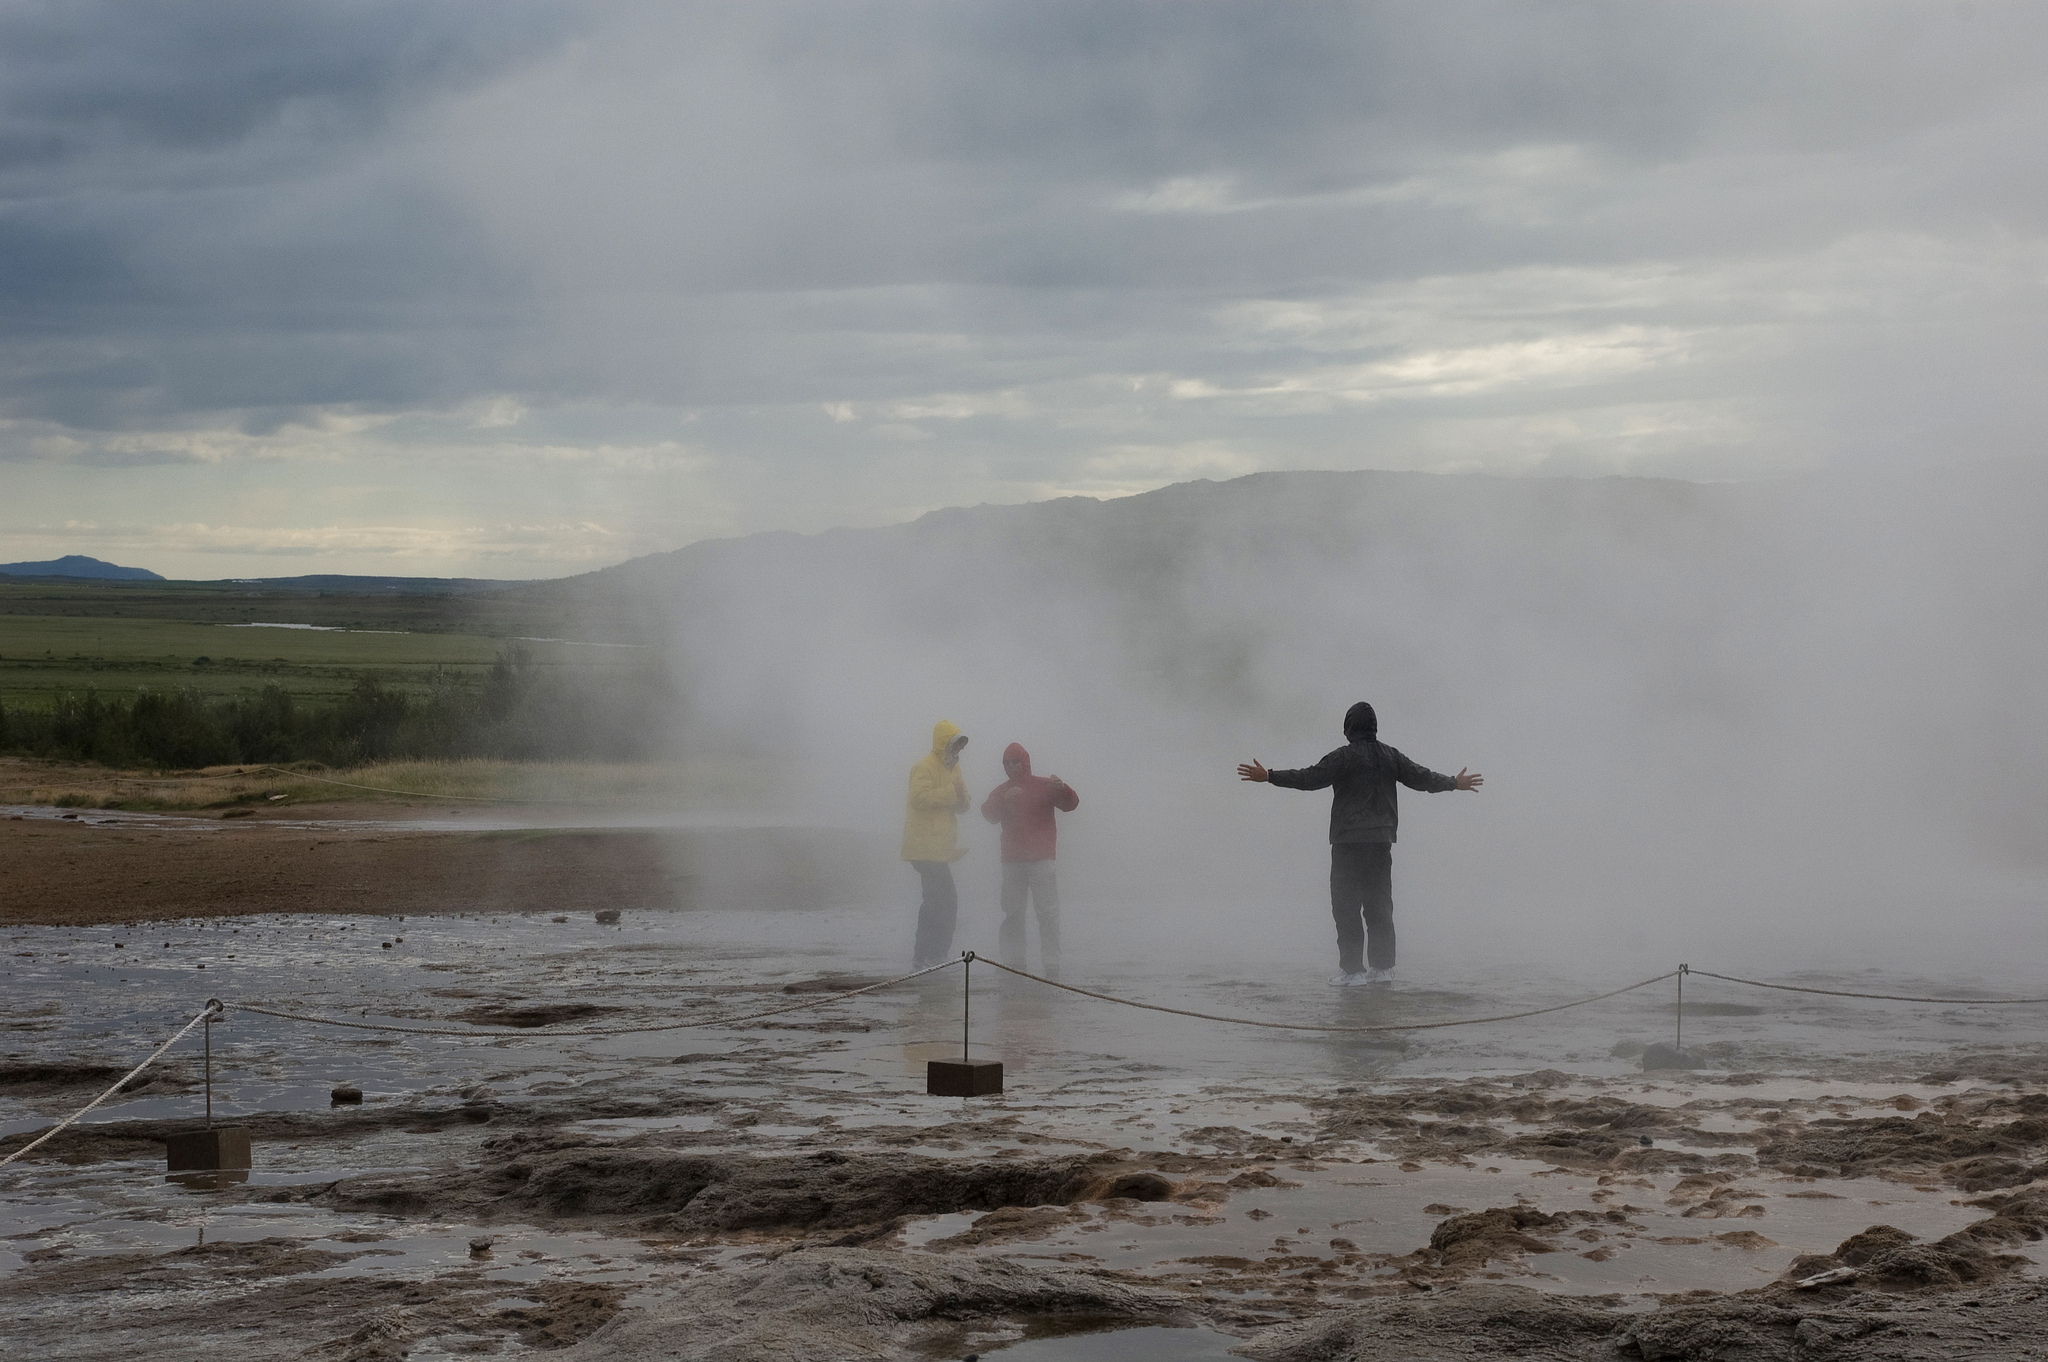 Tourism: The Destruction Of Iceland